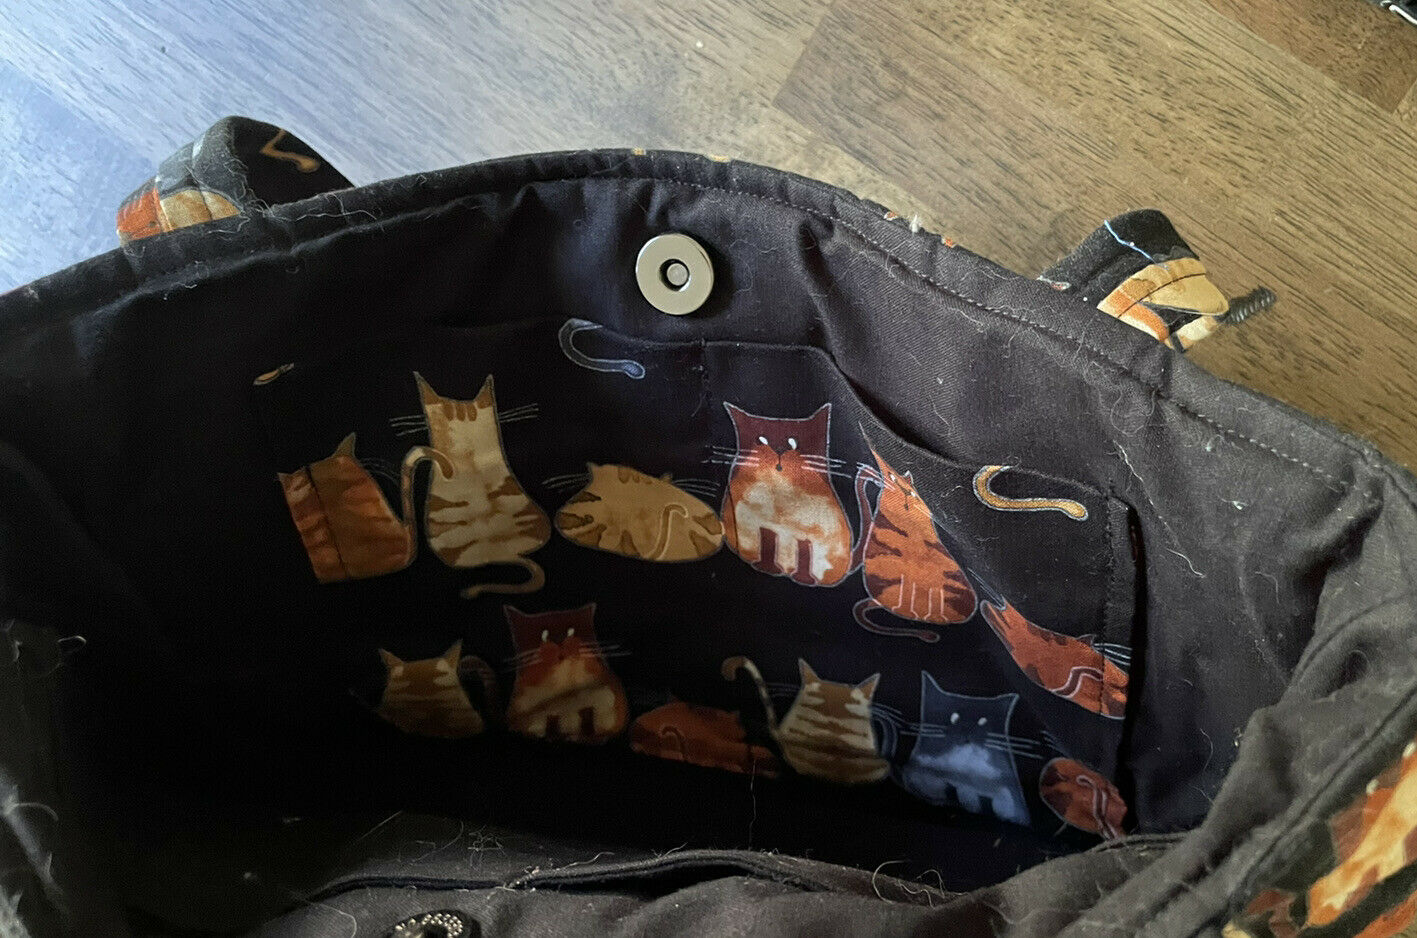 Kitten Cat Quilted Tote Purse Bag - image 3